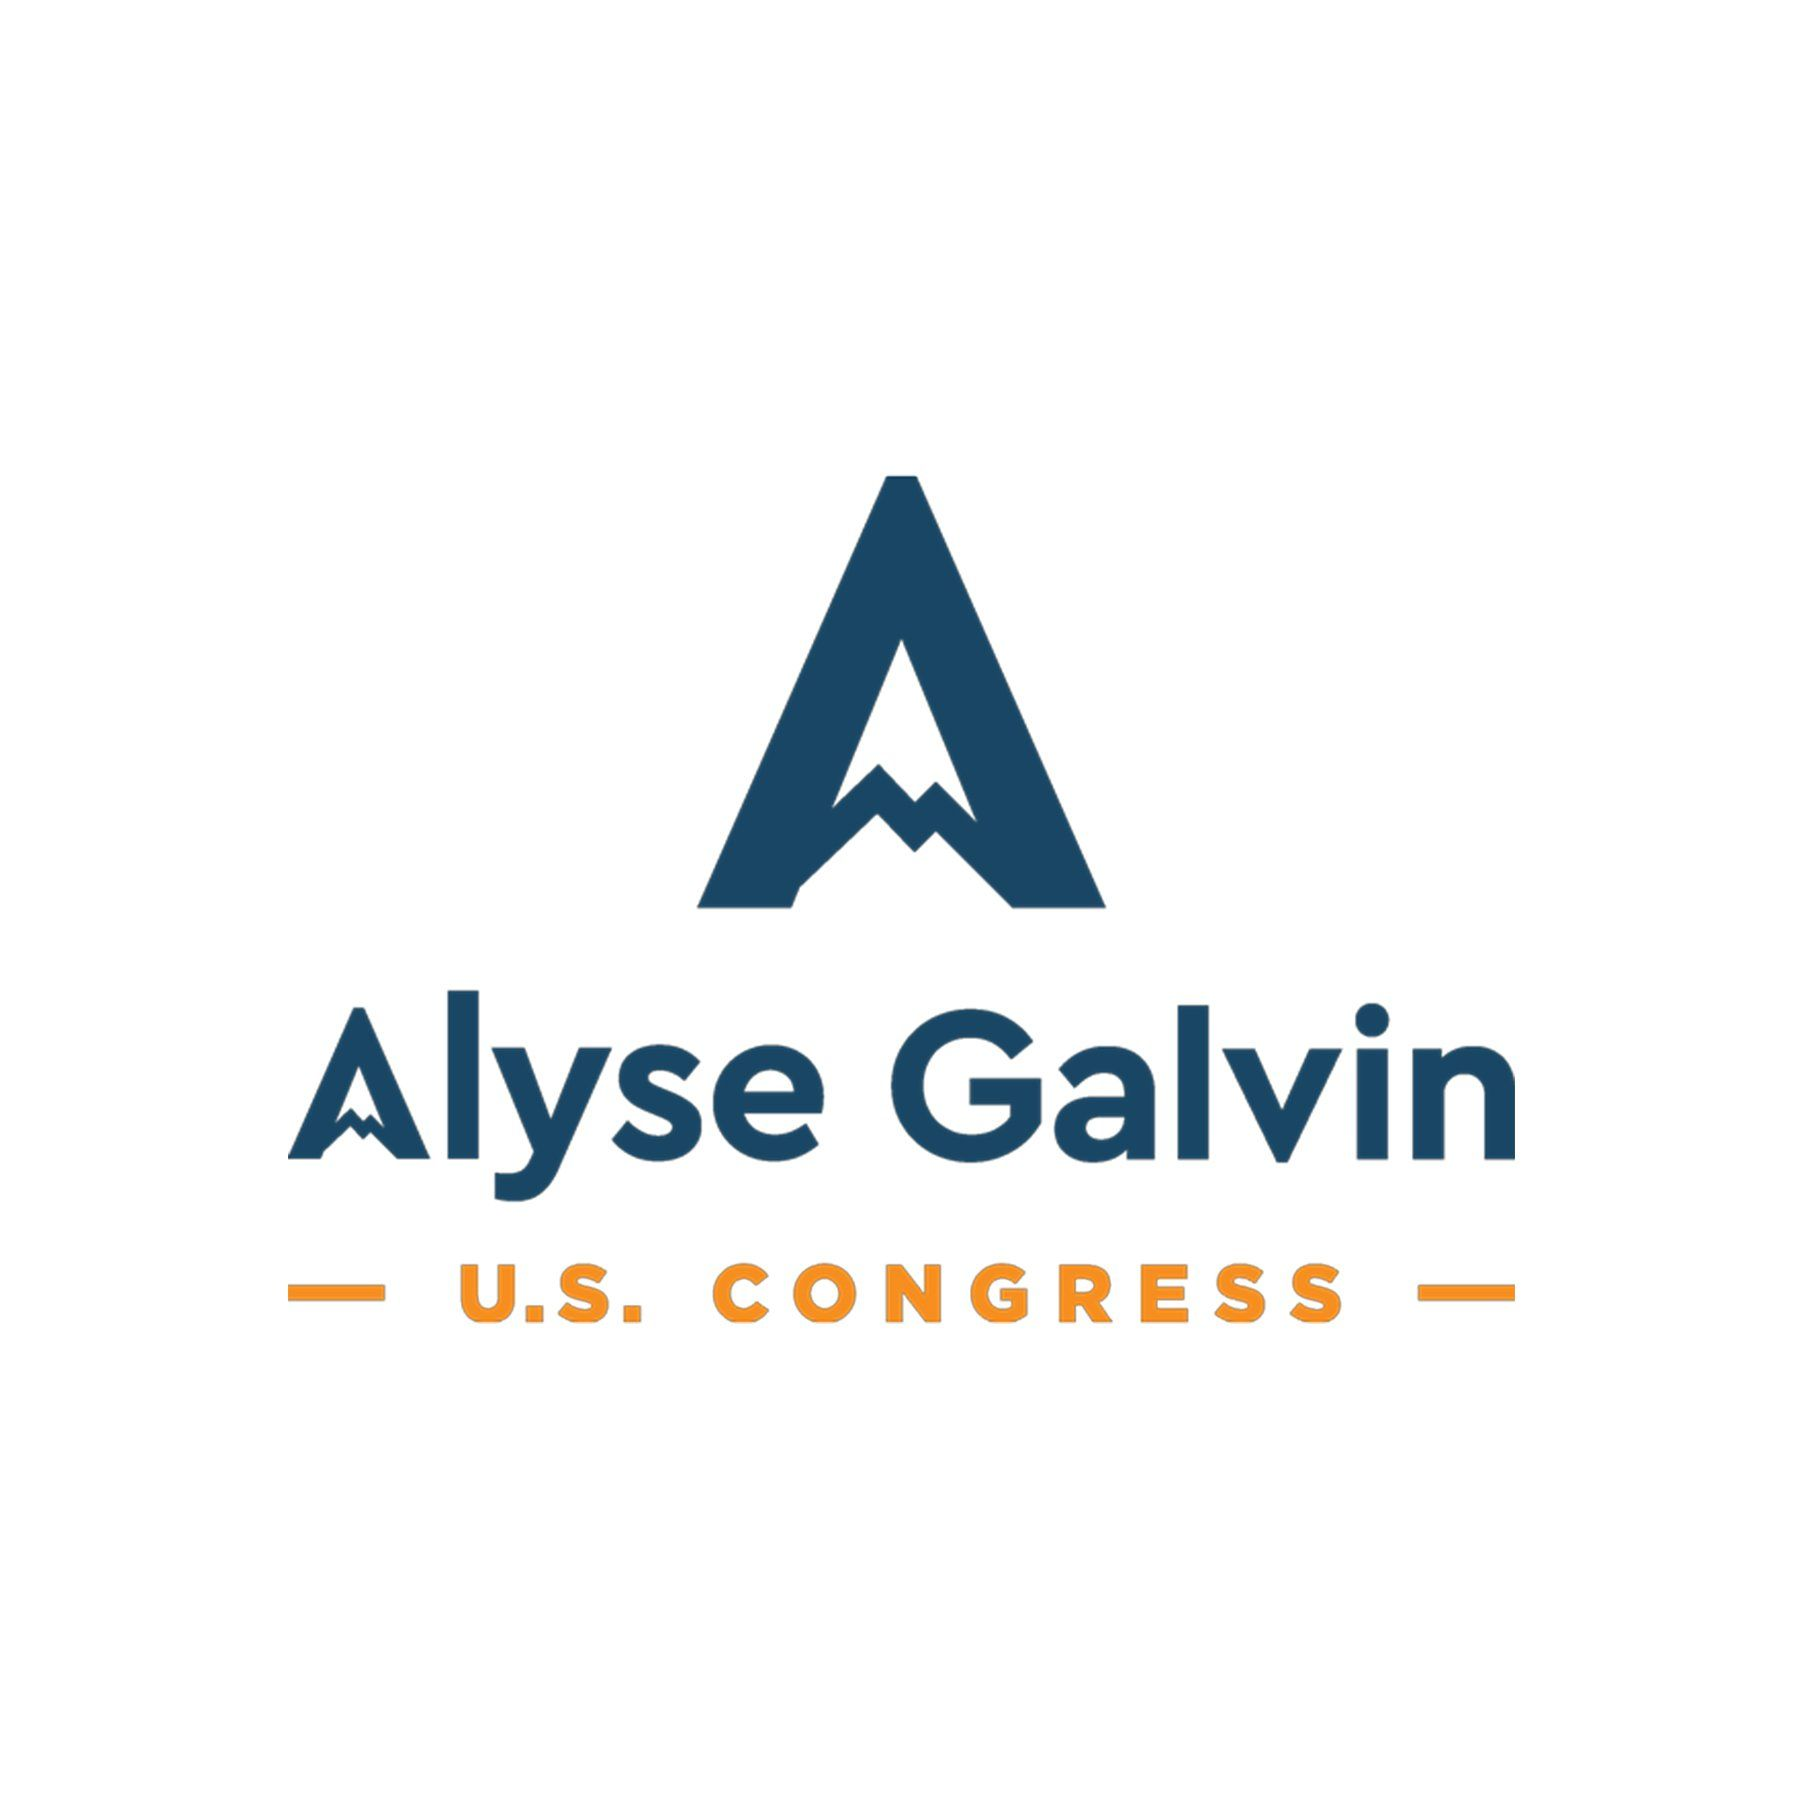 Image result for alyse galvin logo